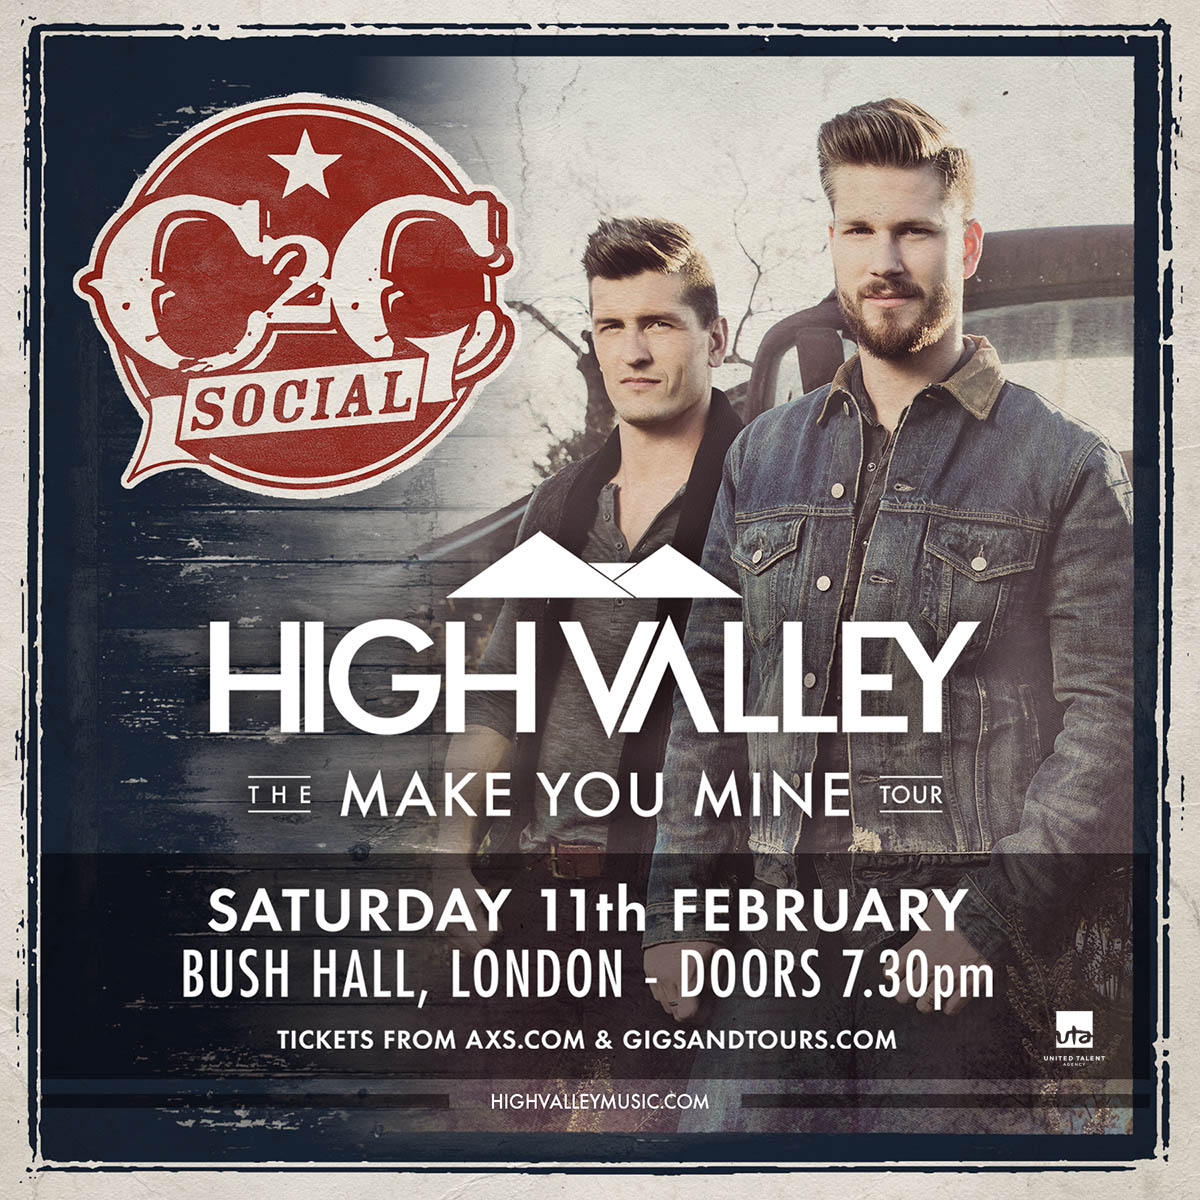 C2C Social featuring High Valley